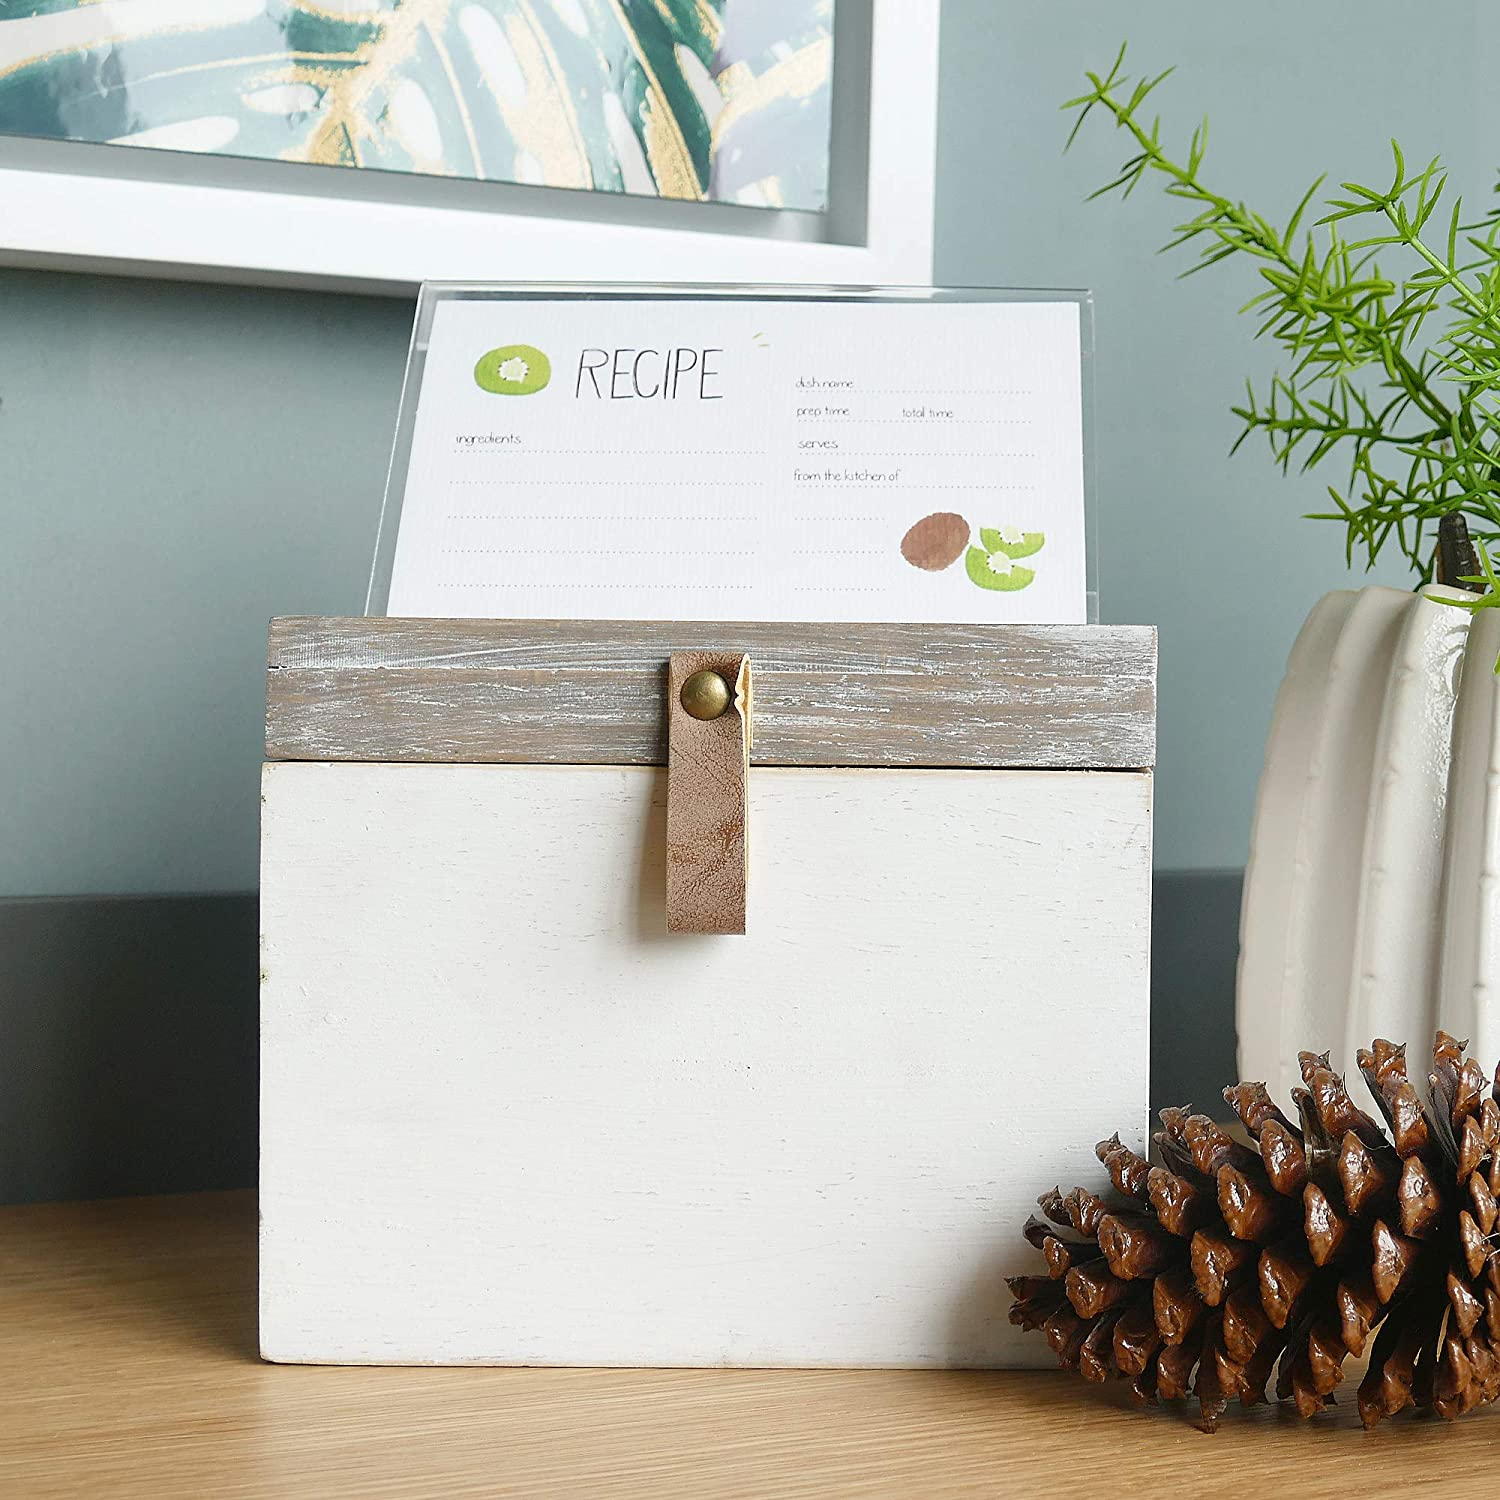 7.09 x 5.12 x 5.91 Inches NIKKY HOME Kitchen Wood Recipe Organization Box with Cards and Dividers